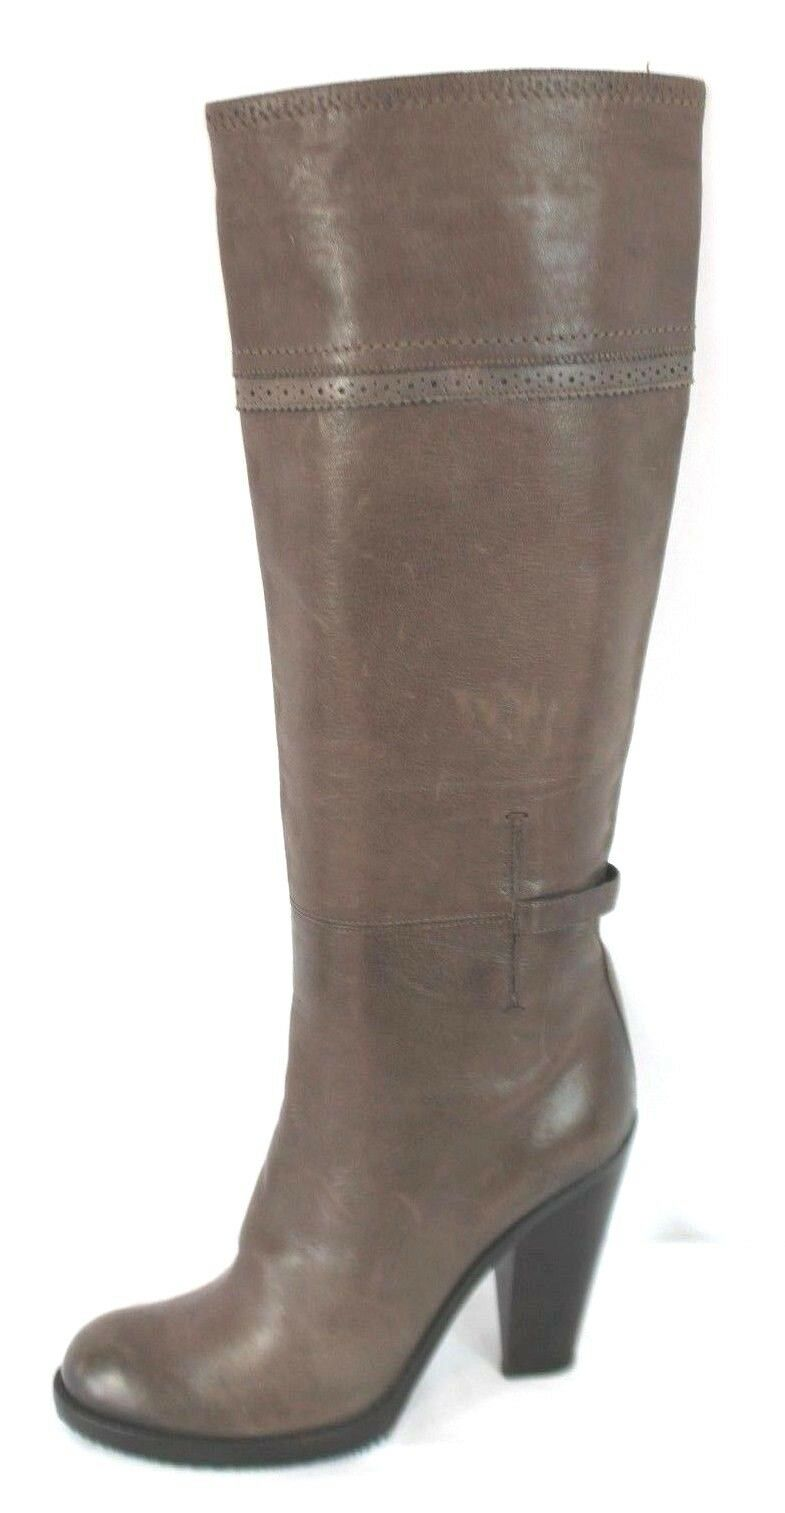 $685 COSTUME NATIONAL Brown Leather Knee-High Pull On Boots Shoes Size 41 Italy